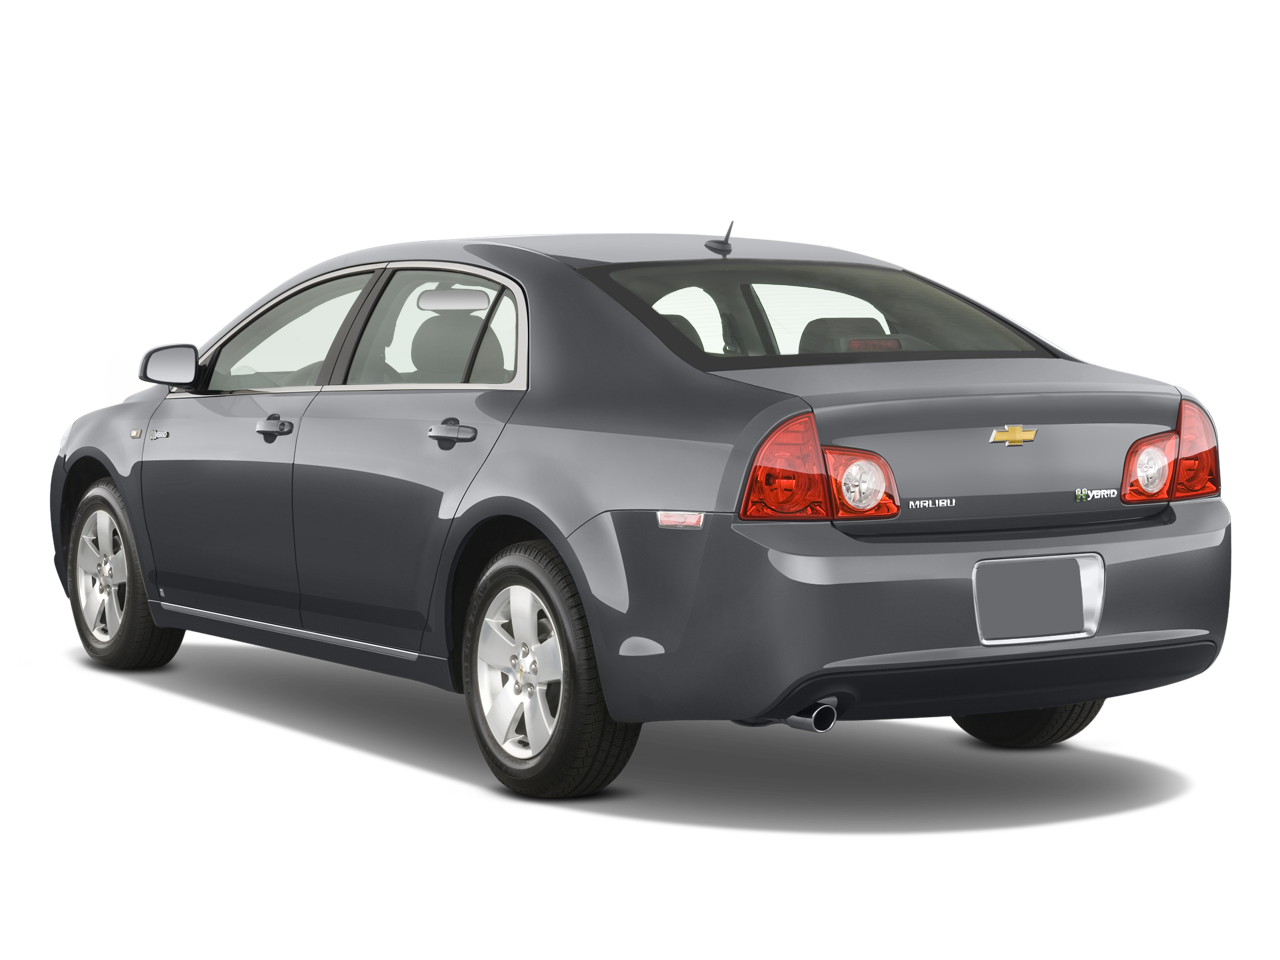 All Star 2008 Chevrolet Malibu News Features And Awards Renault Vel Satis Wiring Diagram 4 75